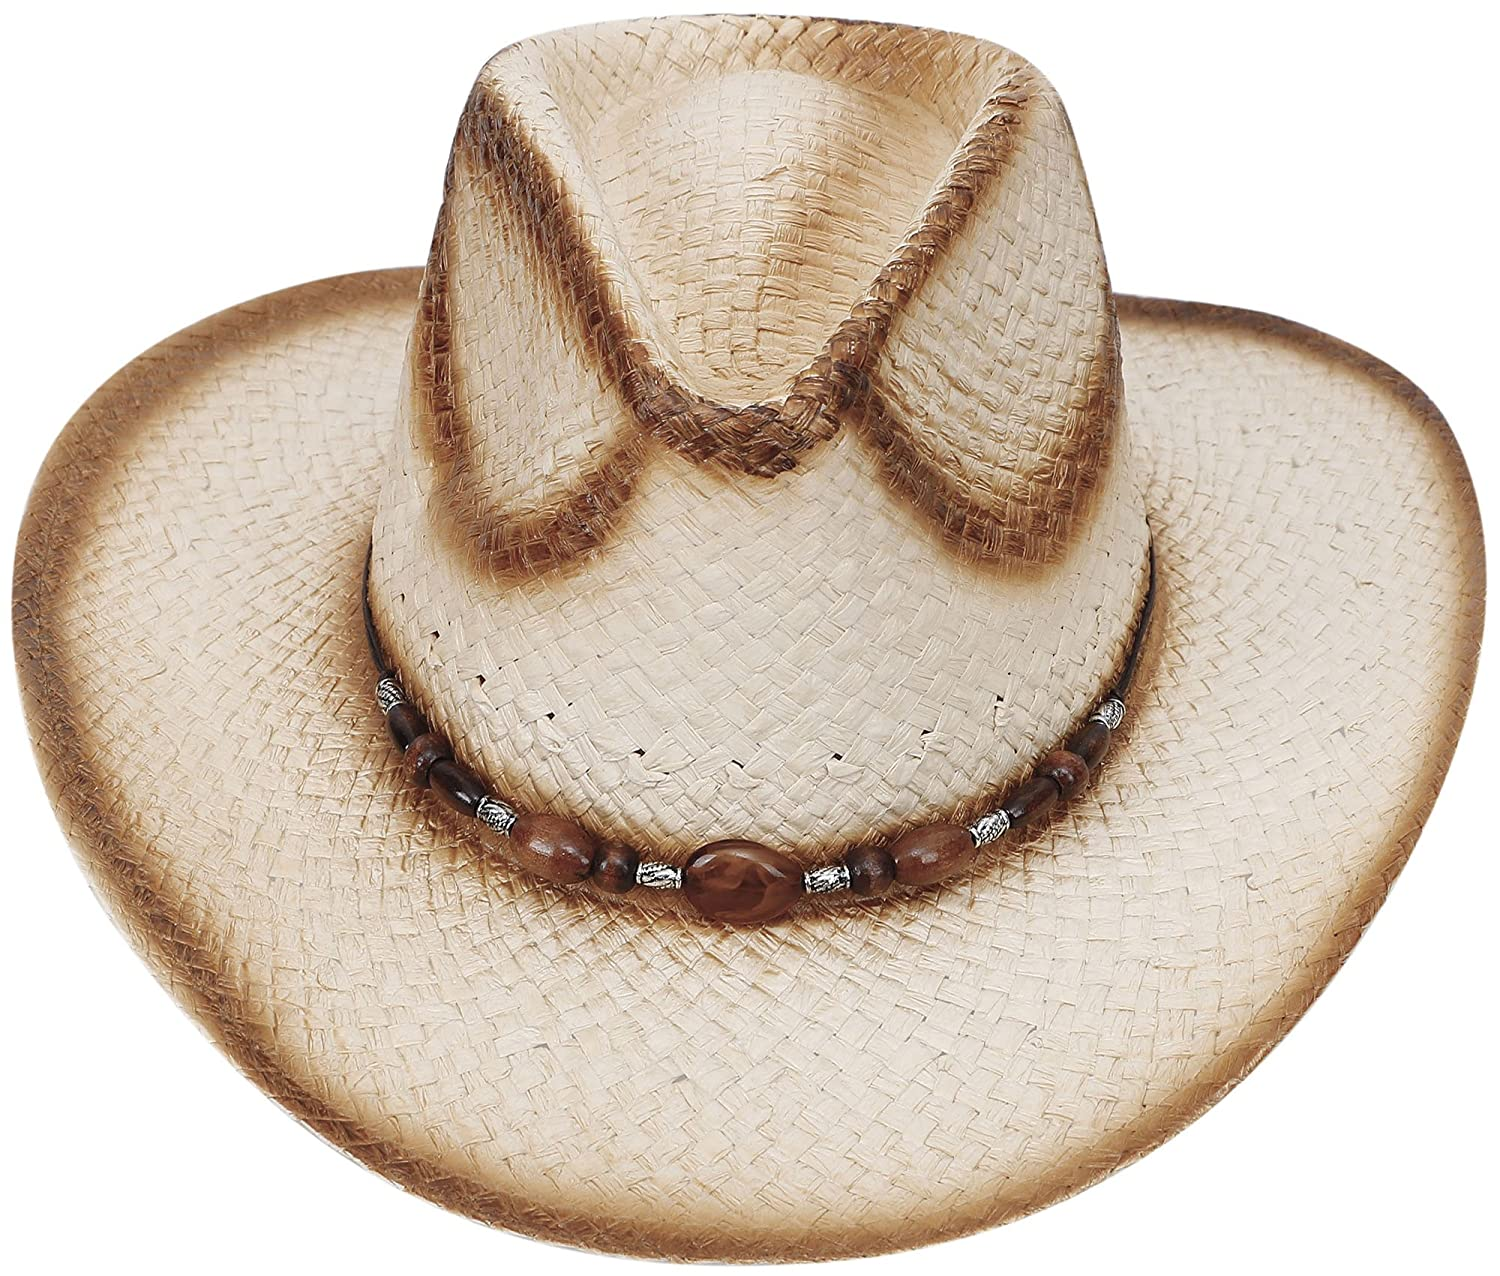 Simplicity Men's & Women's Western Style Cowboy/Cowgirl Straw Hat Natural 88-B16030023-01